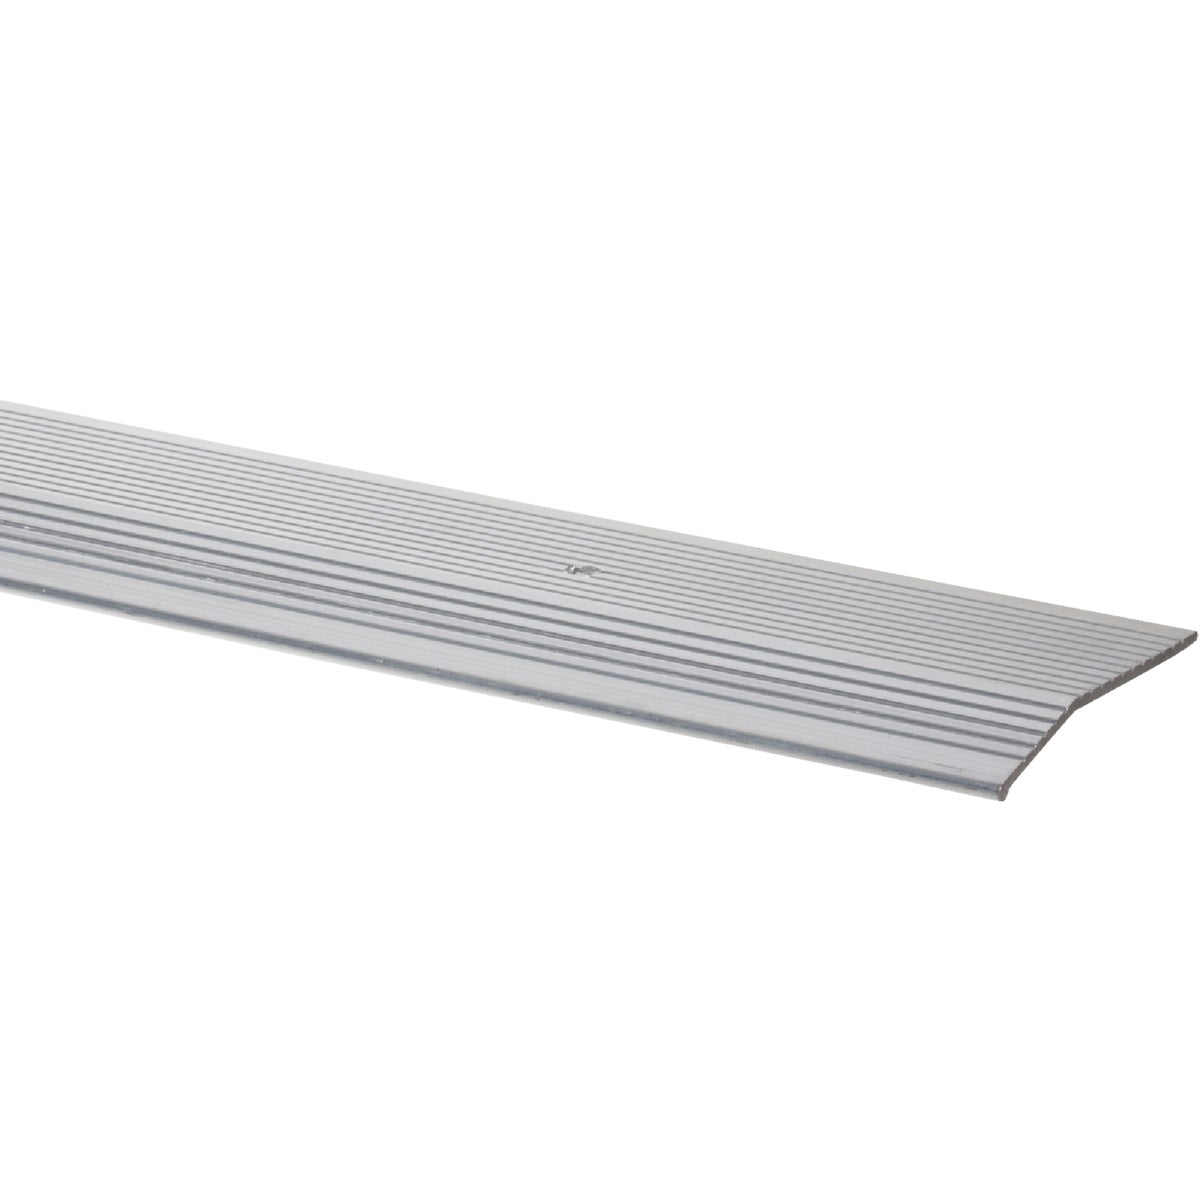 "2""X3' SLVR BINDER BAR - 78212 by M D Building Prod"